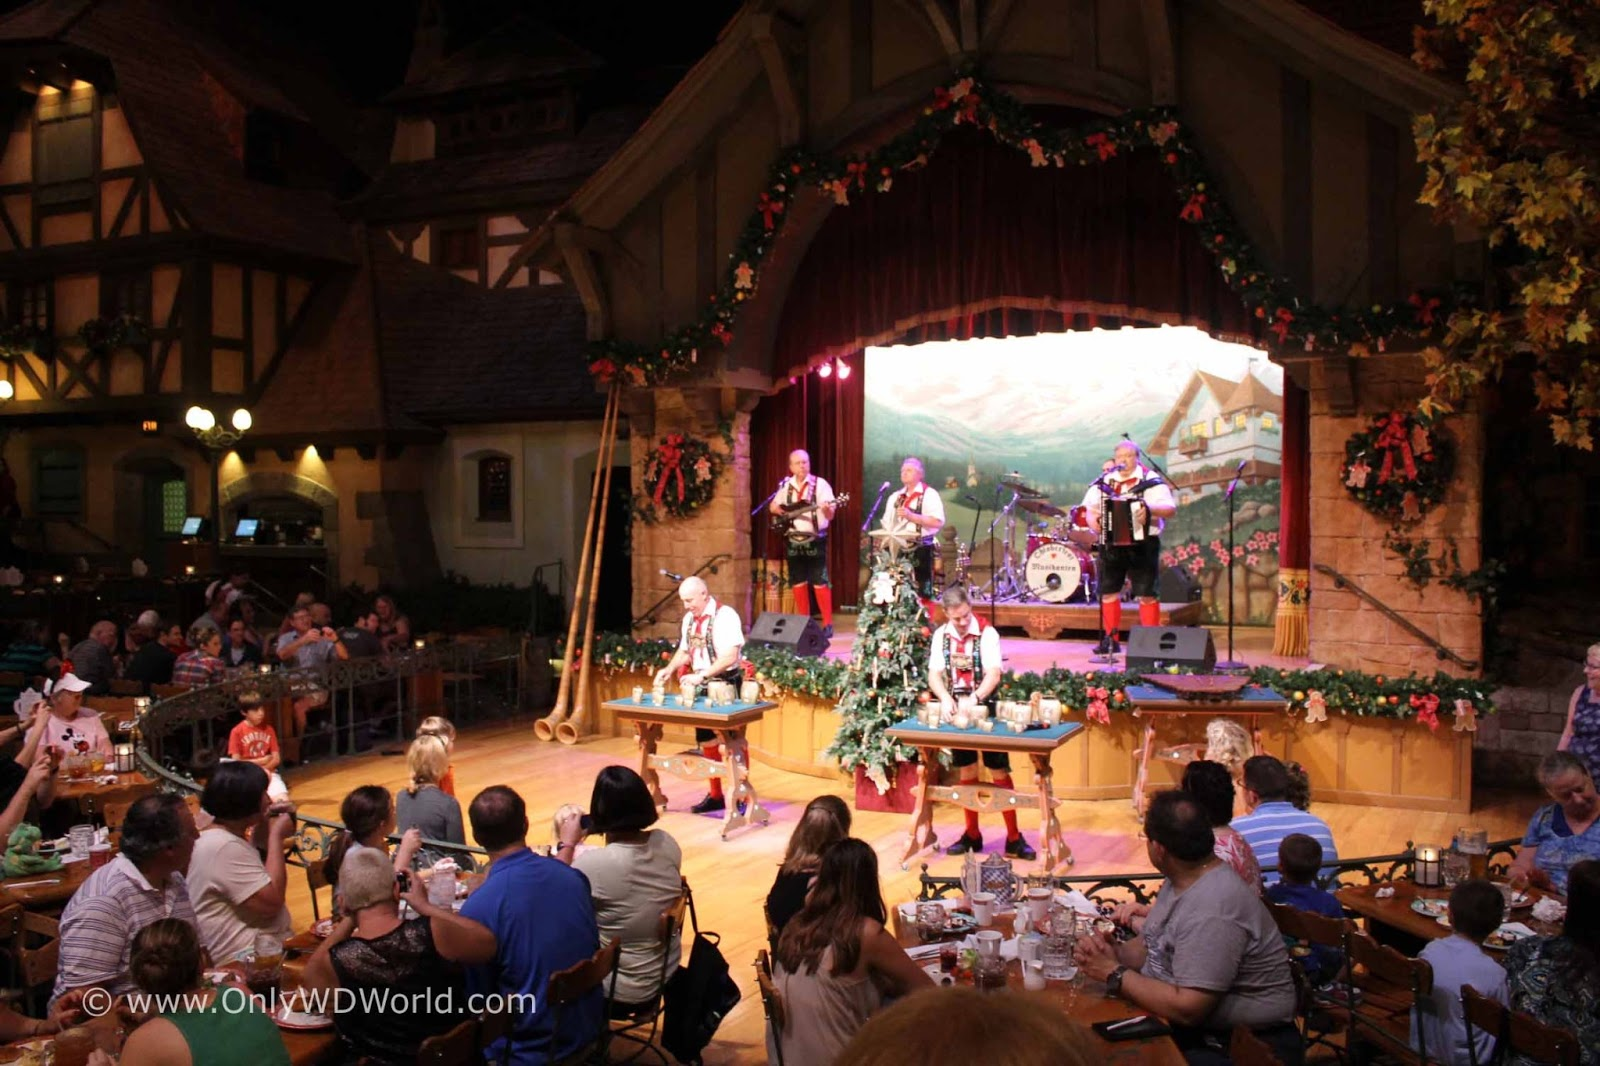 Beer Garten Disney World Dining Biergarten Restaurant Disney World